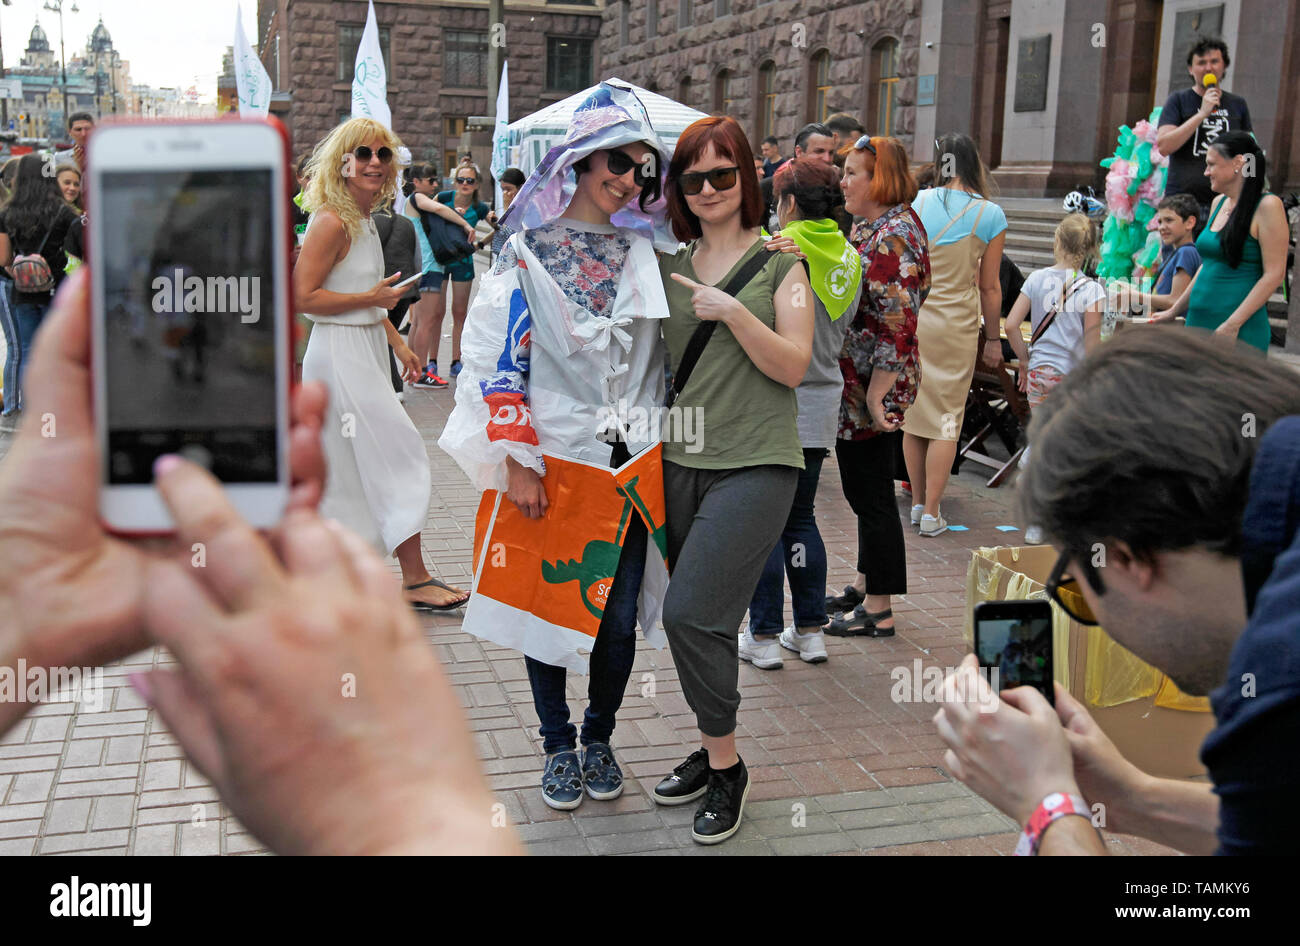 Kiev, Ukraine. 26th May, 2019. An eco activist is seen dressed in plastic bags posing for a photo during the protest. A group of environmental activists organized a 'March of plastic bags' outside the Kiev City Hall in Kiev, Ukraine. The activists want a solution to the problem of using and processing of polyethylene bags and other plastic packaging. They called for restrictions on the use of plastic bags. Credit: SOPA Images Limited/Alamy Live News - Stock Image